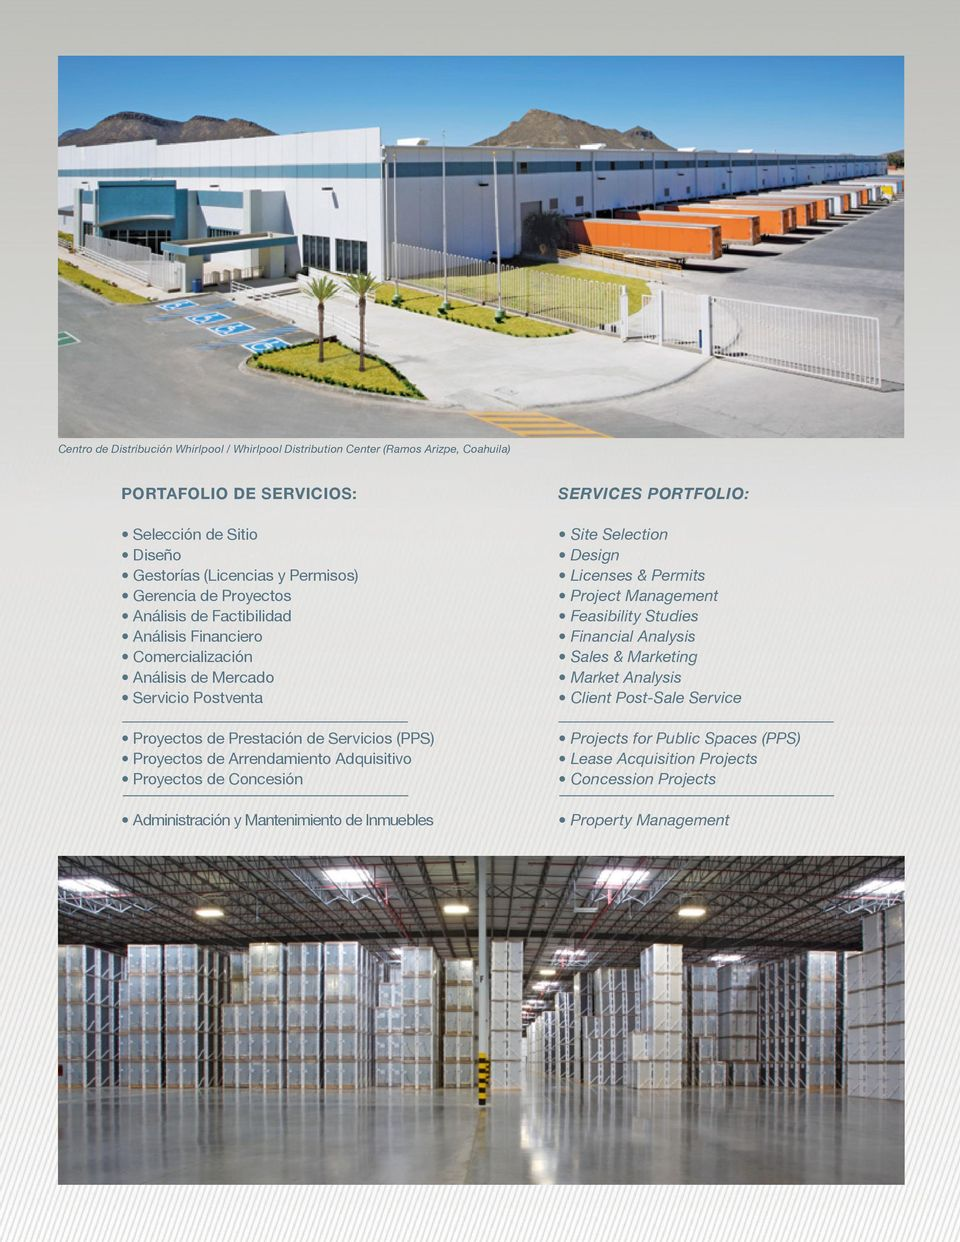 Arrendamiento Adquisitivo Proyectos de Concesión Administración y Mantenimiento de Inmuebles Services Portfolio: Site Selection Design Licenses & Permits Project Management